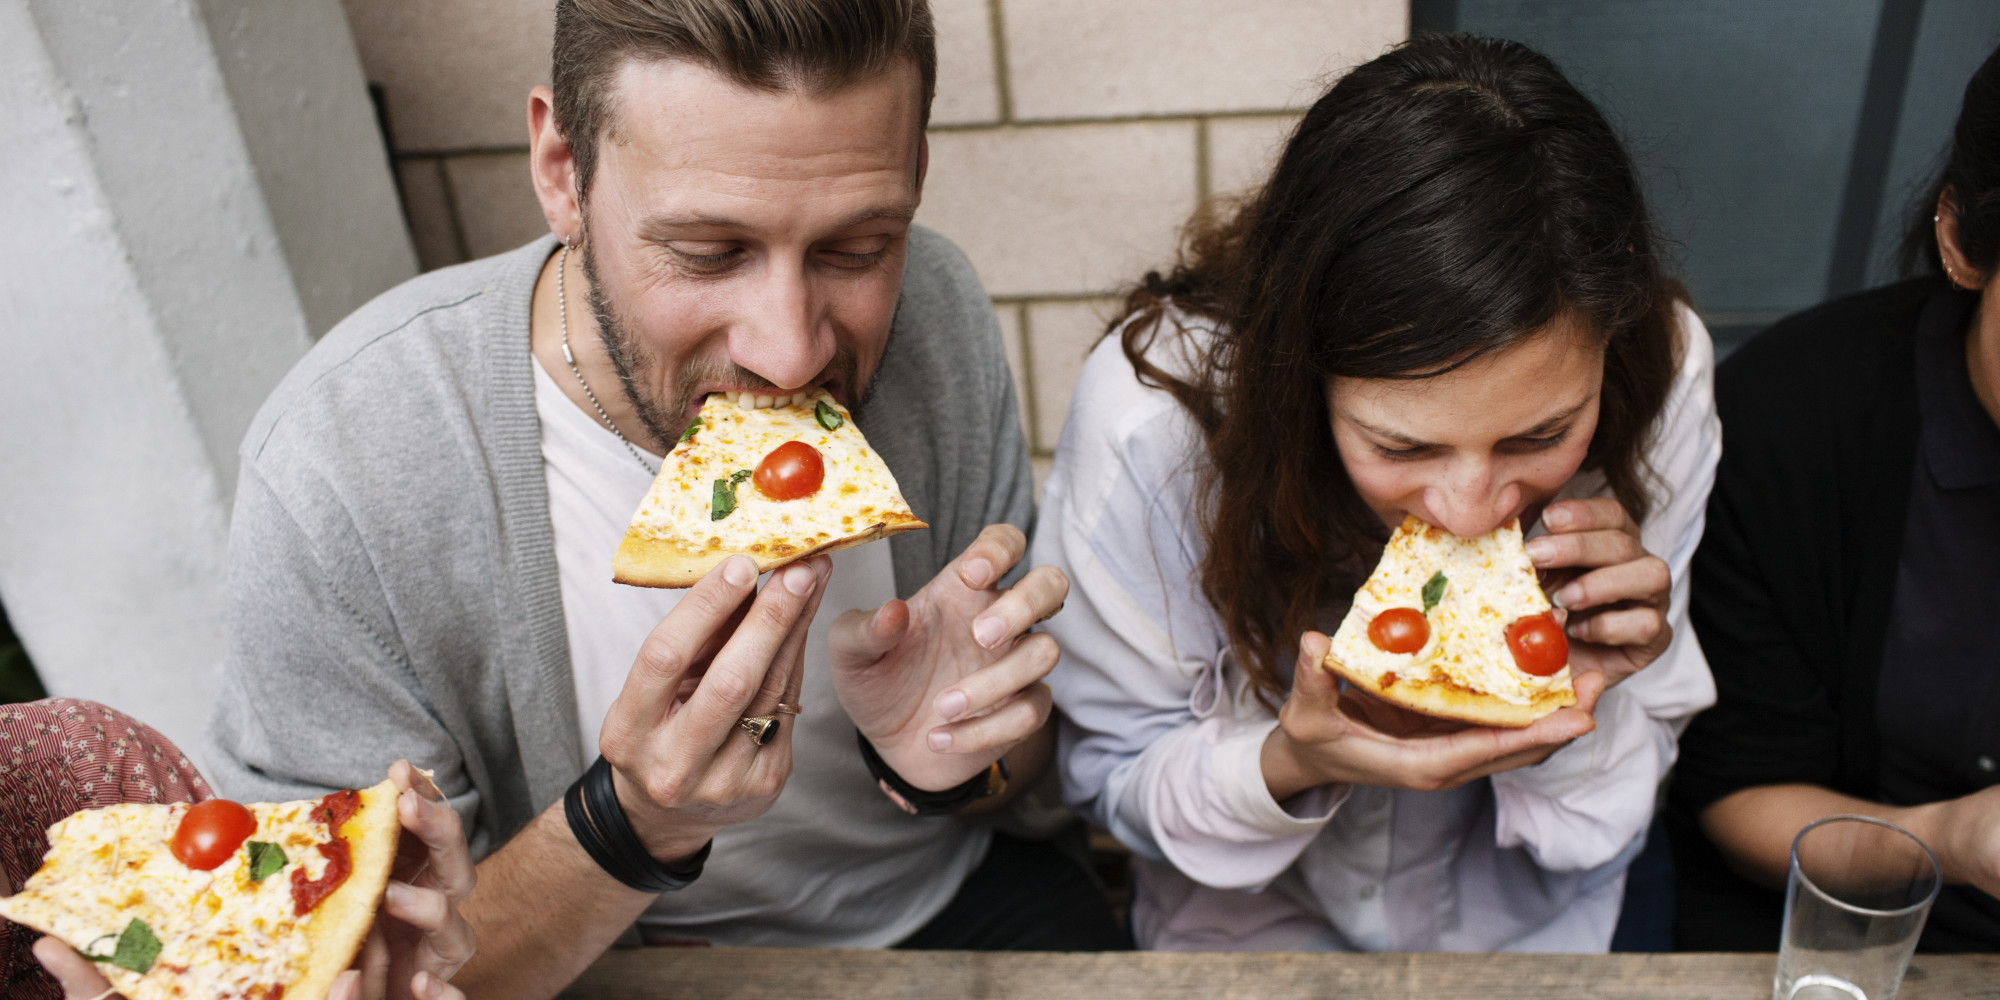 What Eating Can Tell You About The People Around You ...